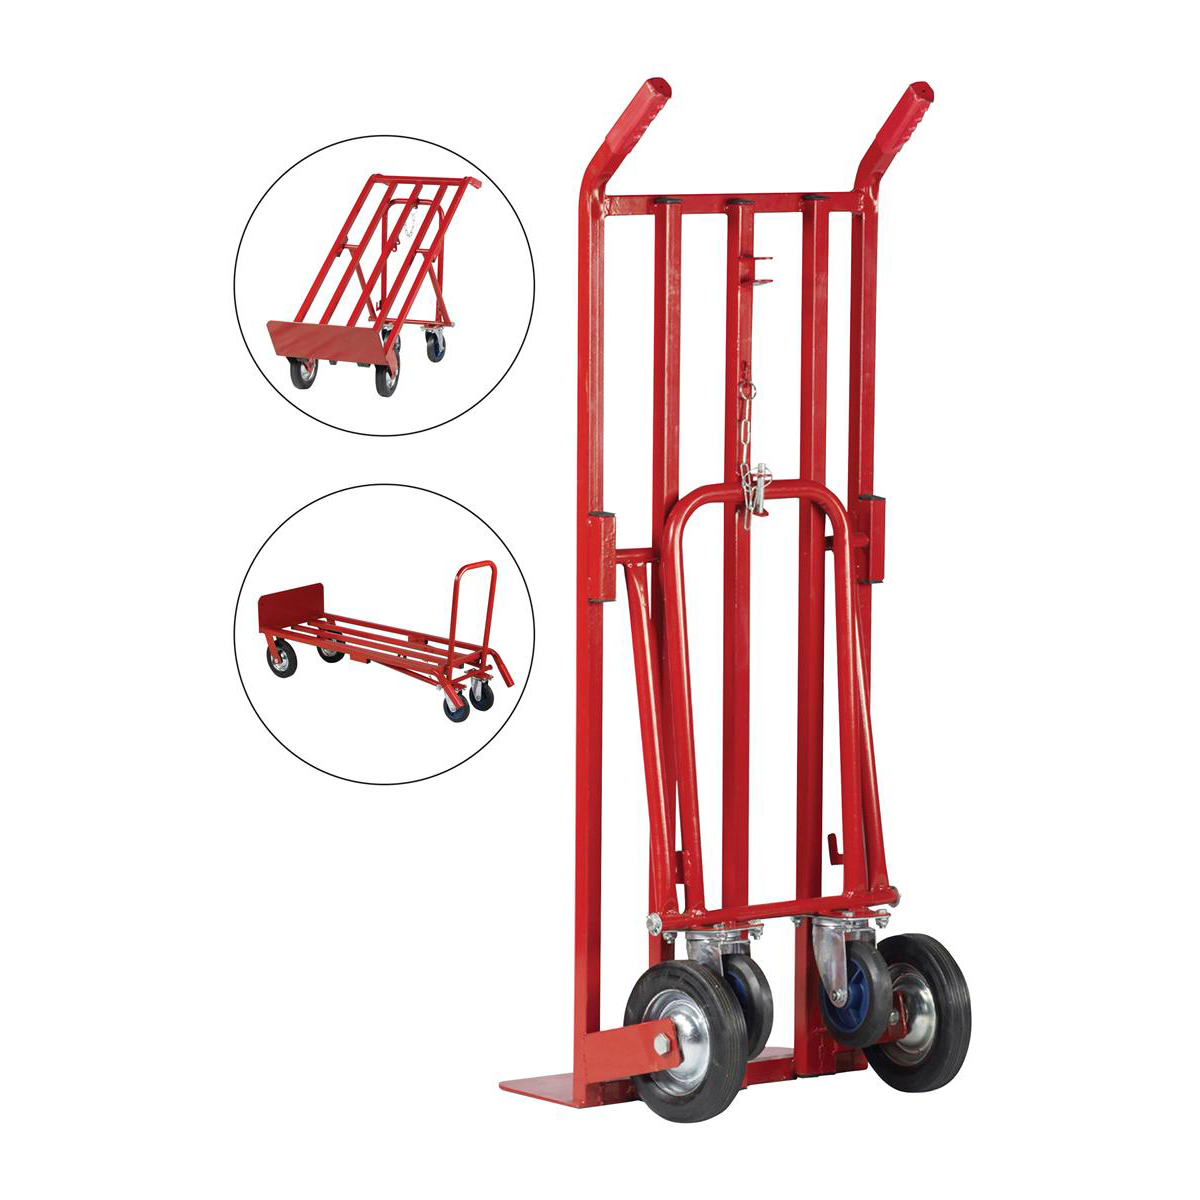 5 Star Facilities Sack Truck Heavy Duty 3 Position Steel Frame Double Rear Castors Capacity 300kg Red